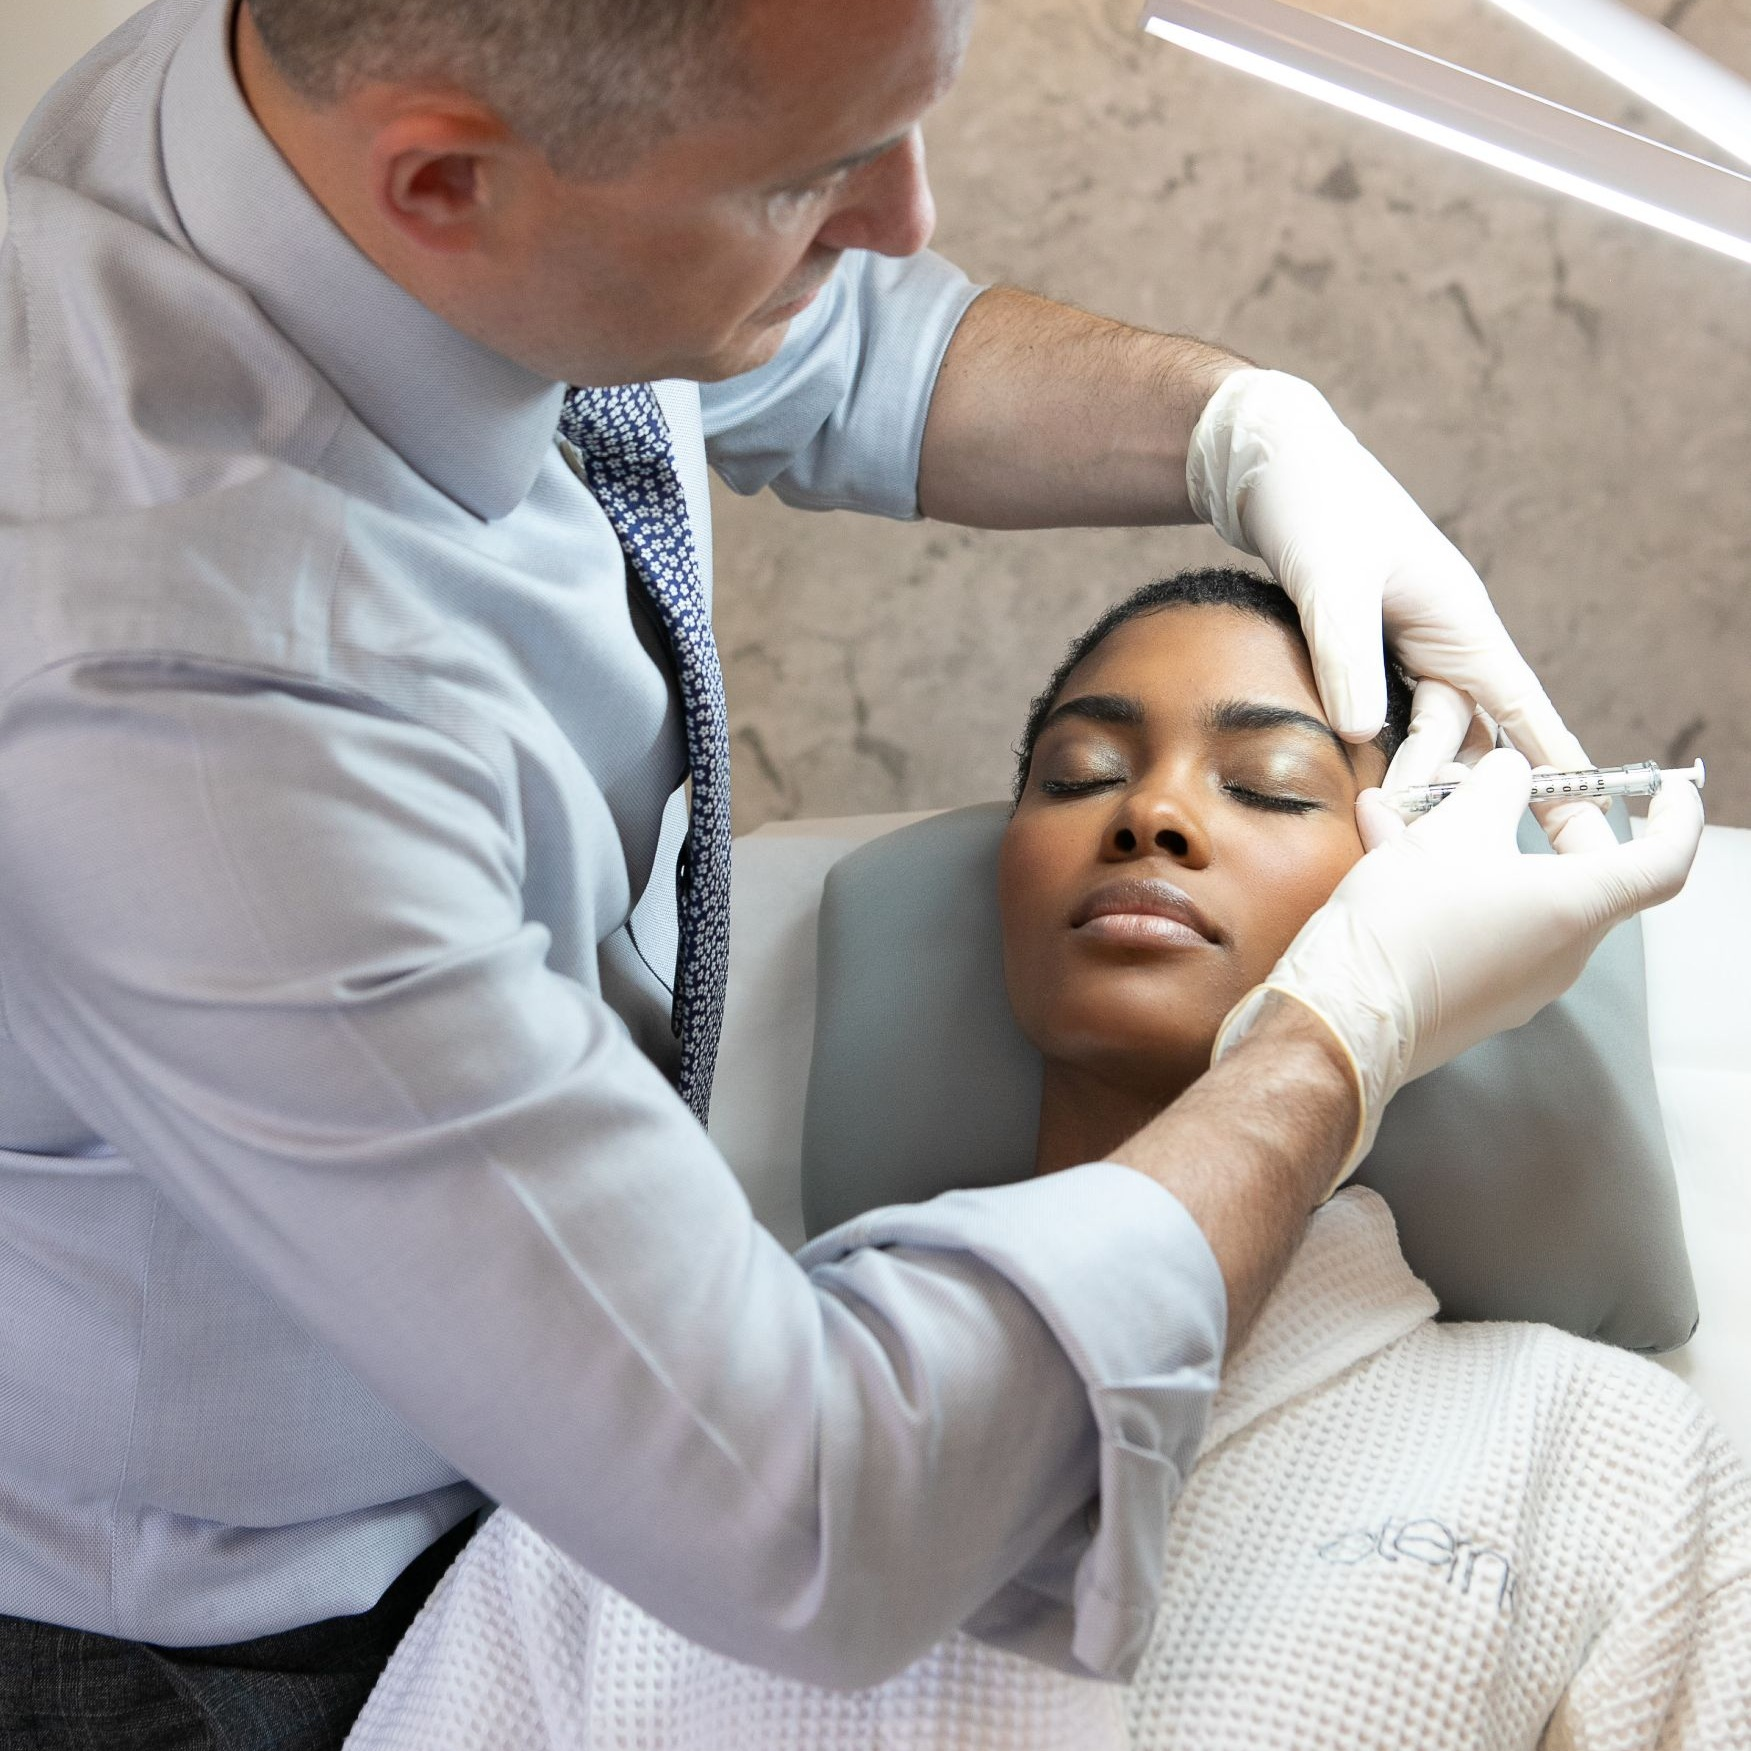 WRINKLE-FREE botox™ - Purified protein injections that produce temporary muscle relaxation, improving the appearance of lines and wrinkles for more youthful radiance.